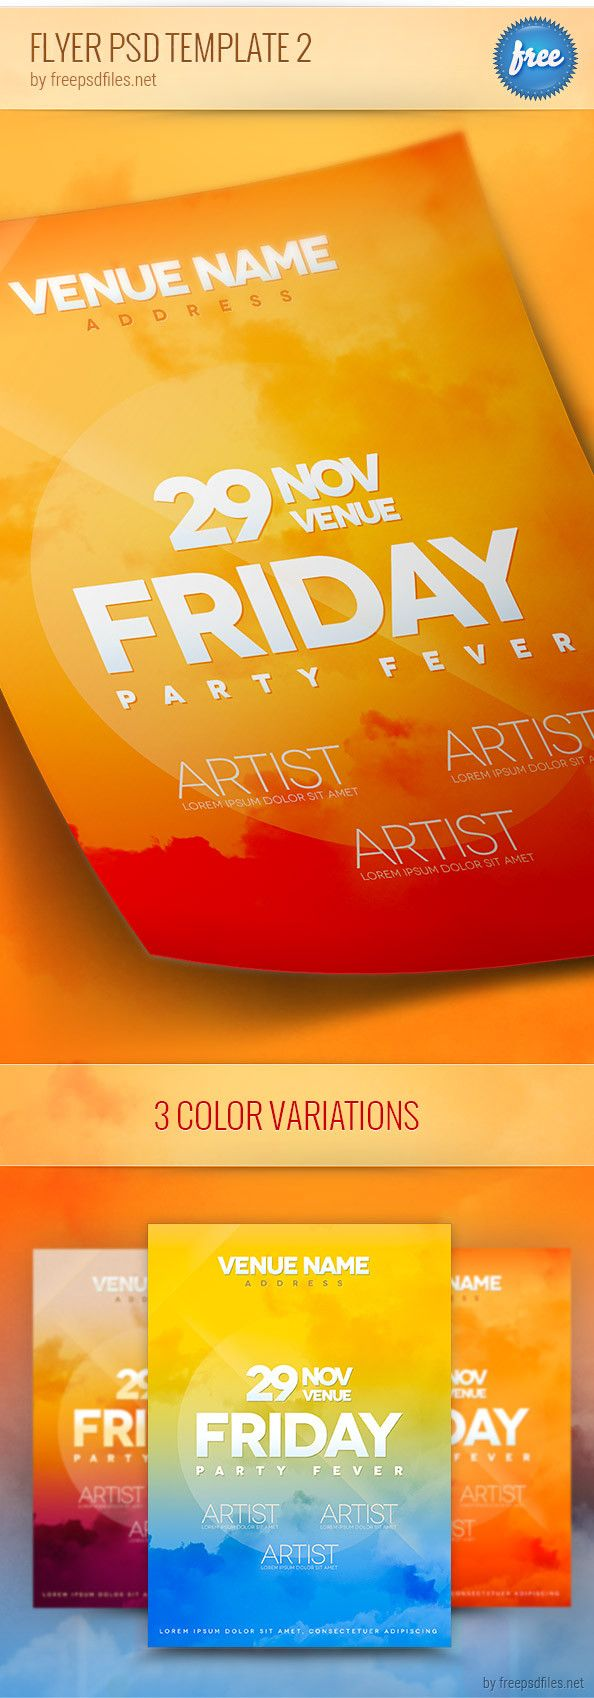 best images about flyers templates 10 just arrived beautiful psd brochure design templates for the year of these mockups are fresh creative and design rich